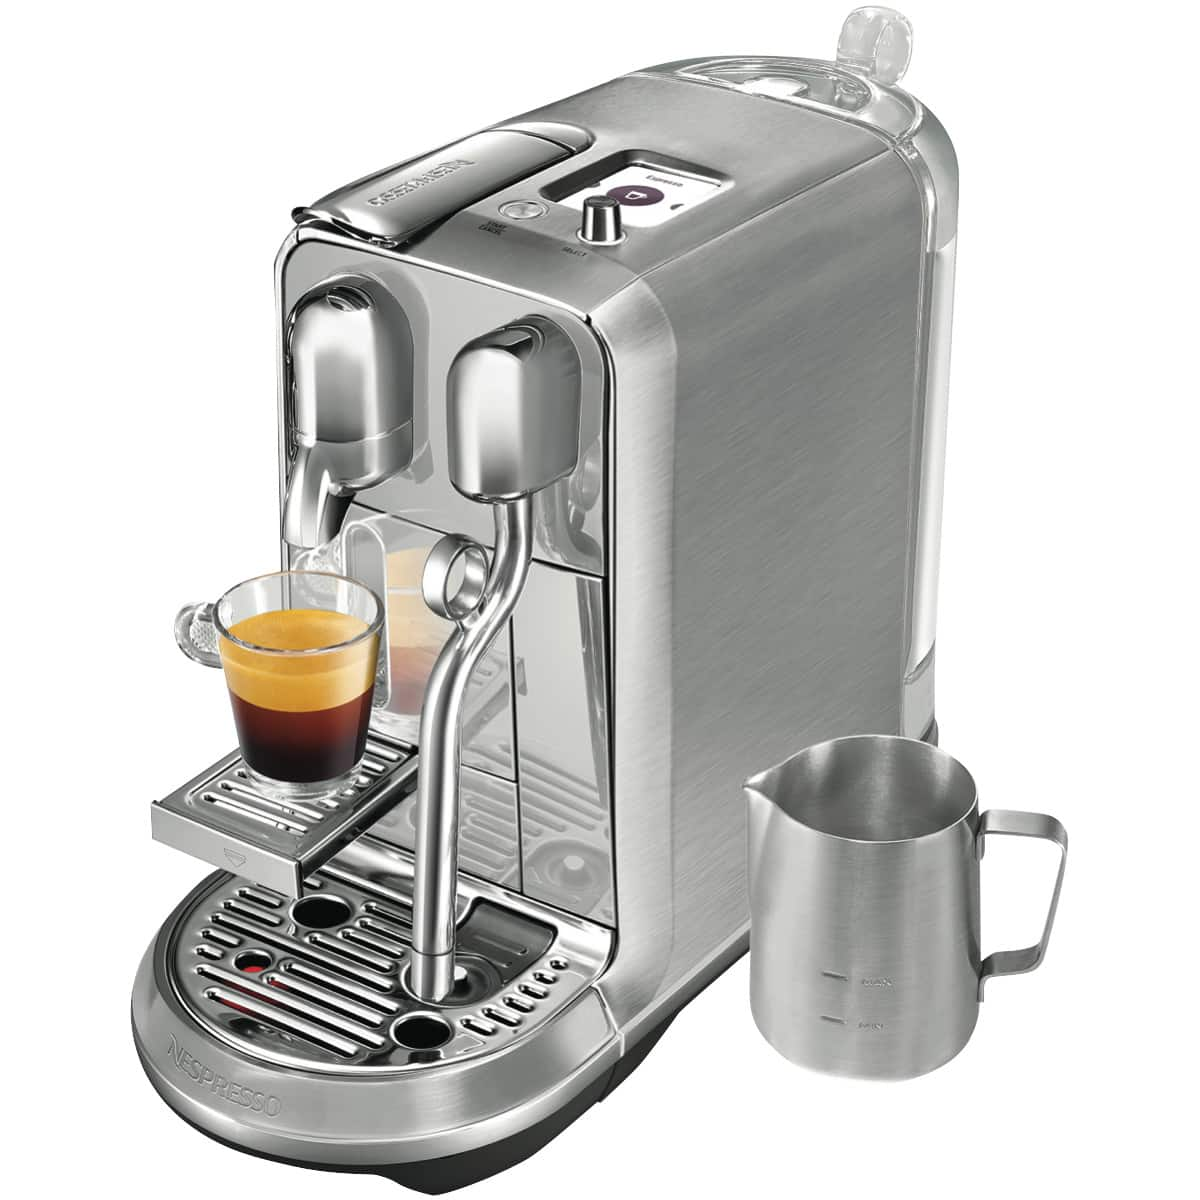 Breville Nespresso Creatista Plus, Stainless Steel $336 + Free Shipping